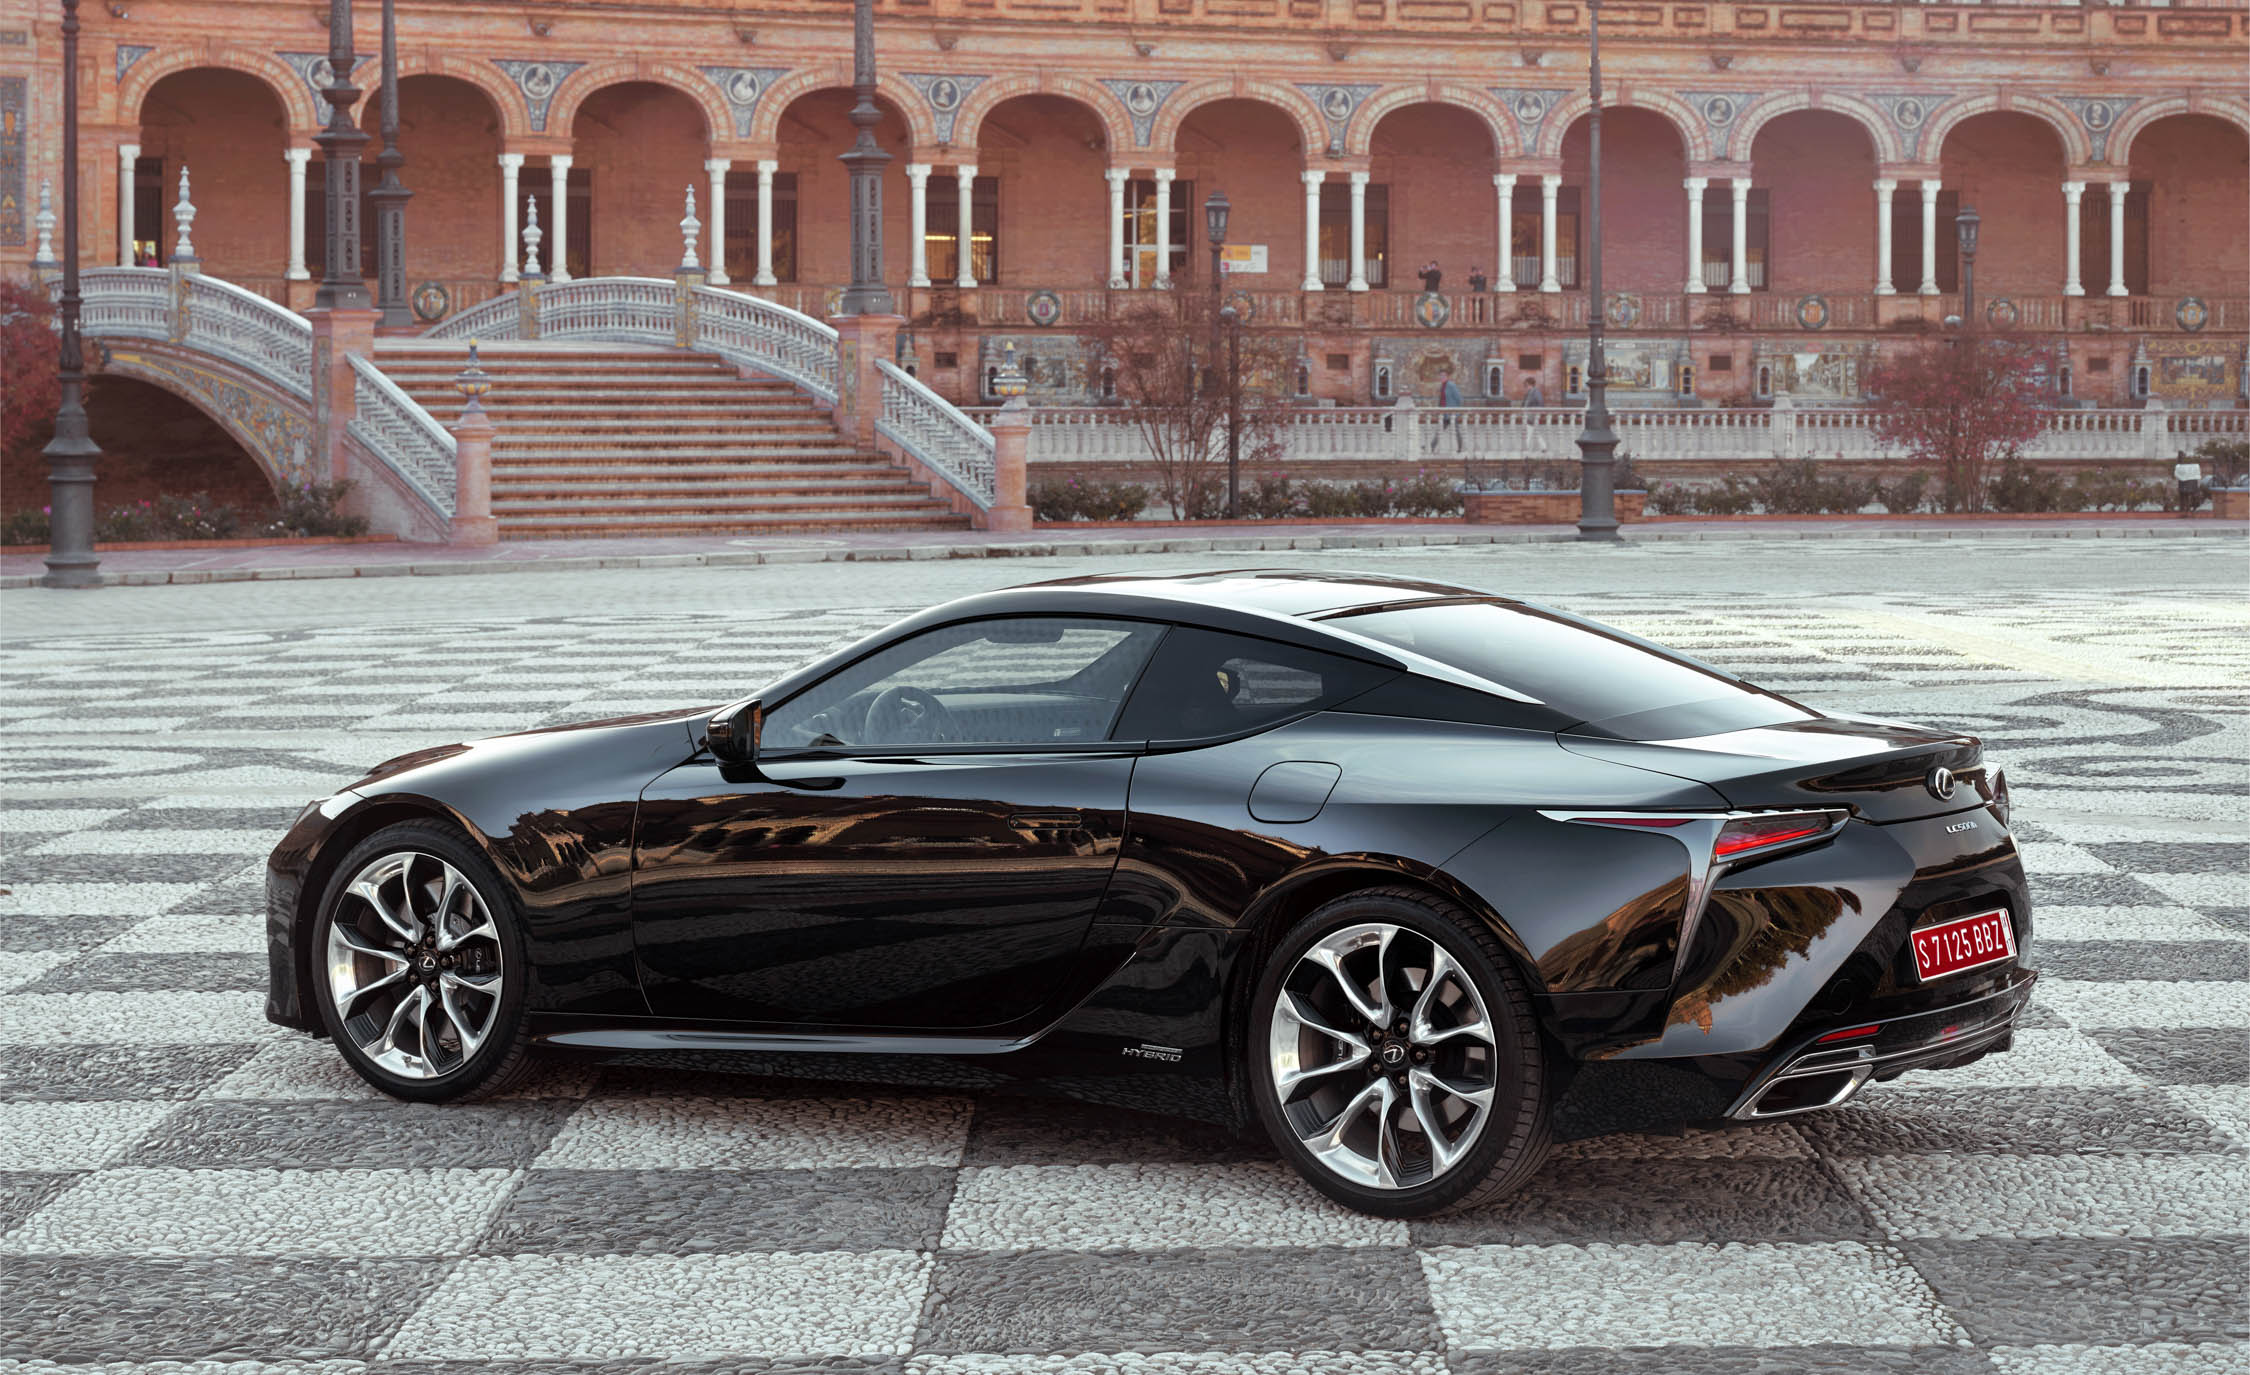 2018 Lexus Lc 500h Black Exterior Side And Rear Gallery 55